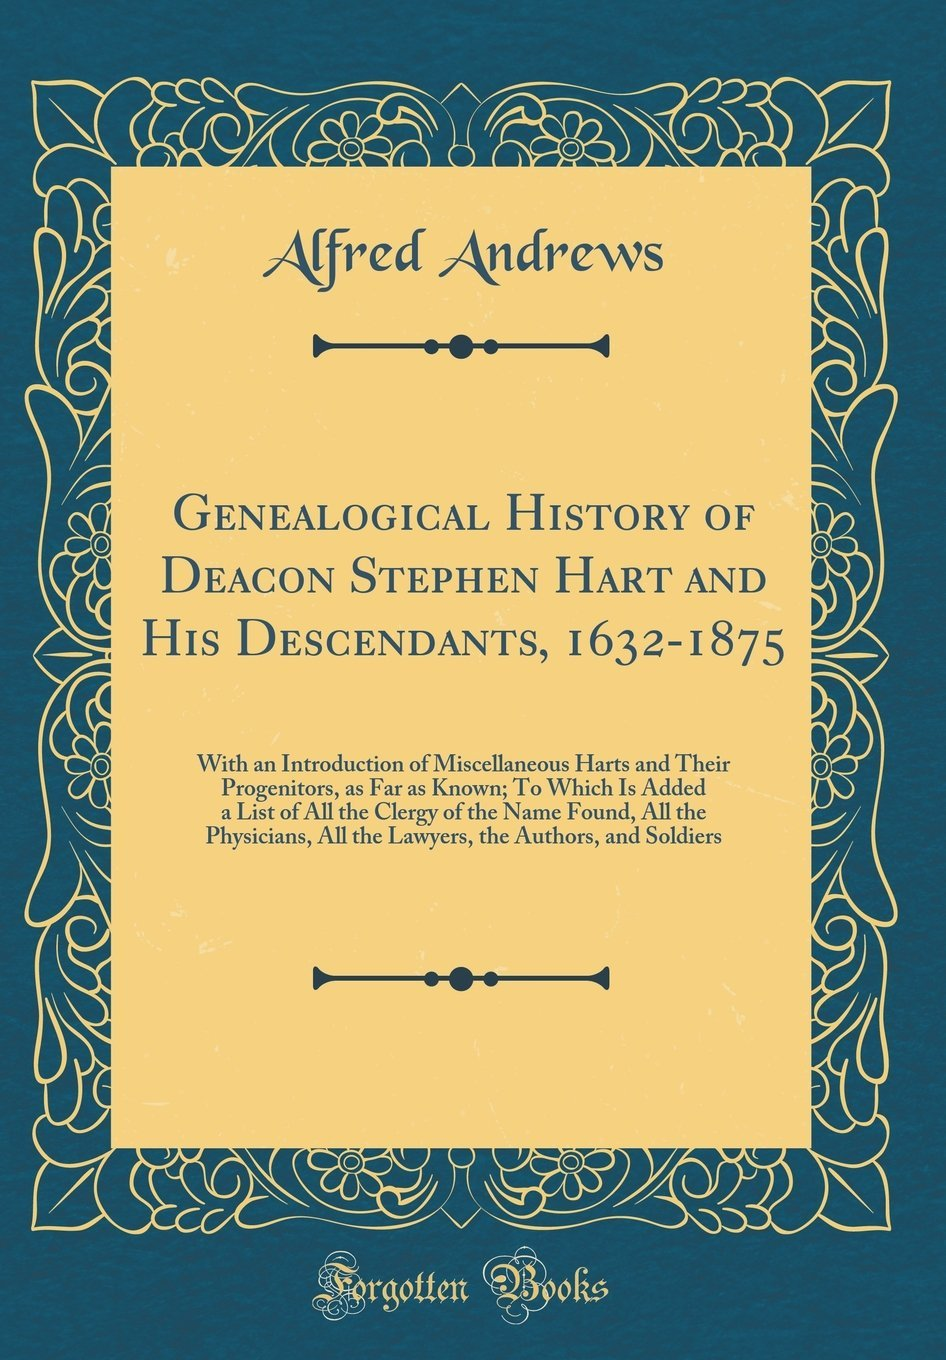 Download Genealogical History of Deacon Stephen Hart and His Descendants, 1632-1875: With an Introduction of Miscellaneous Harts and Their Progenitors, as Far ... Name Found, All the Physicians, All the Lawye ebook